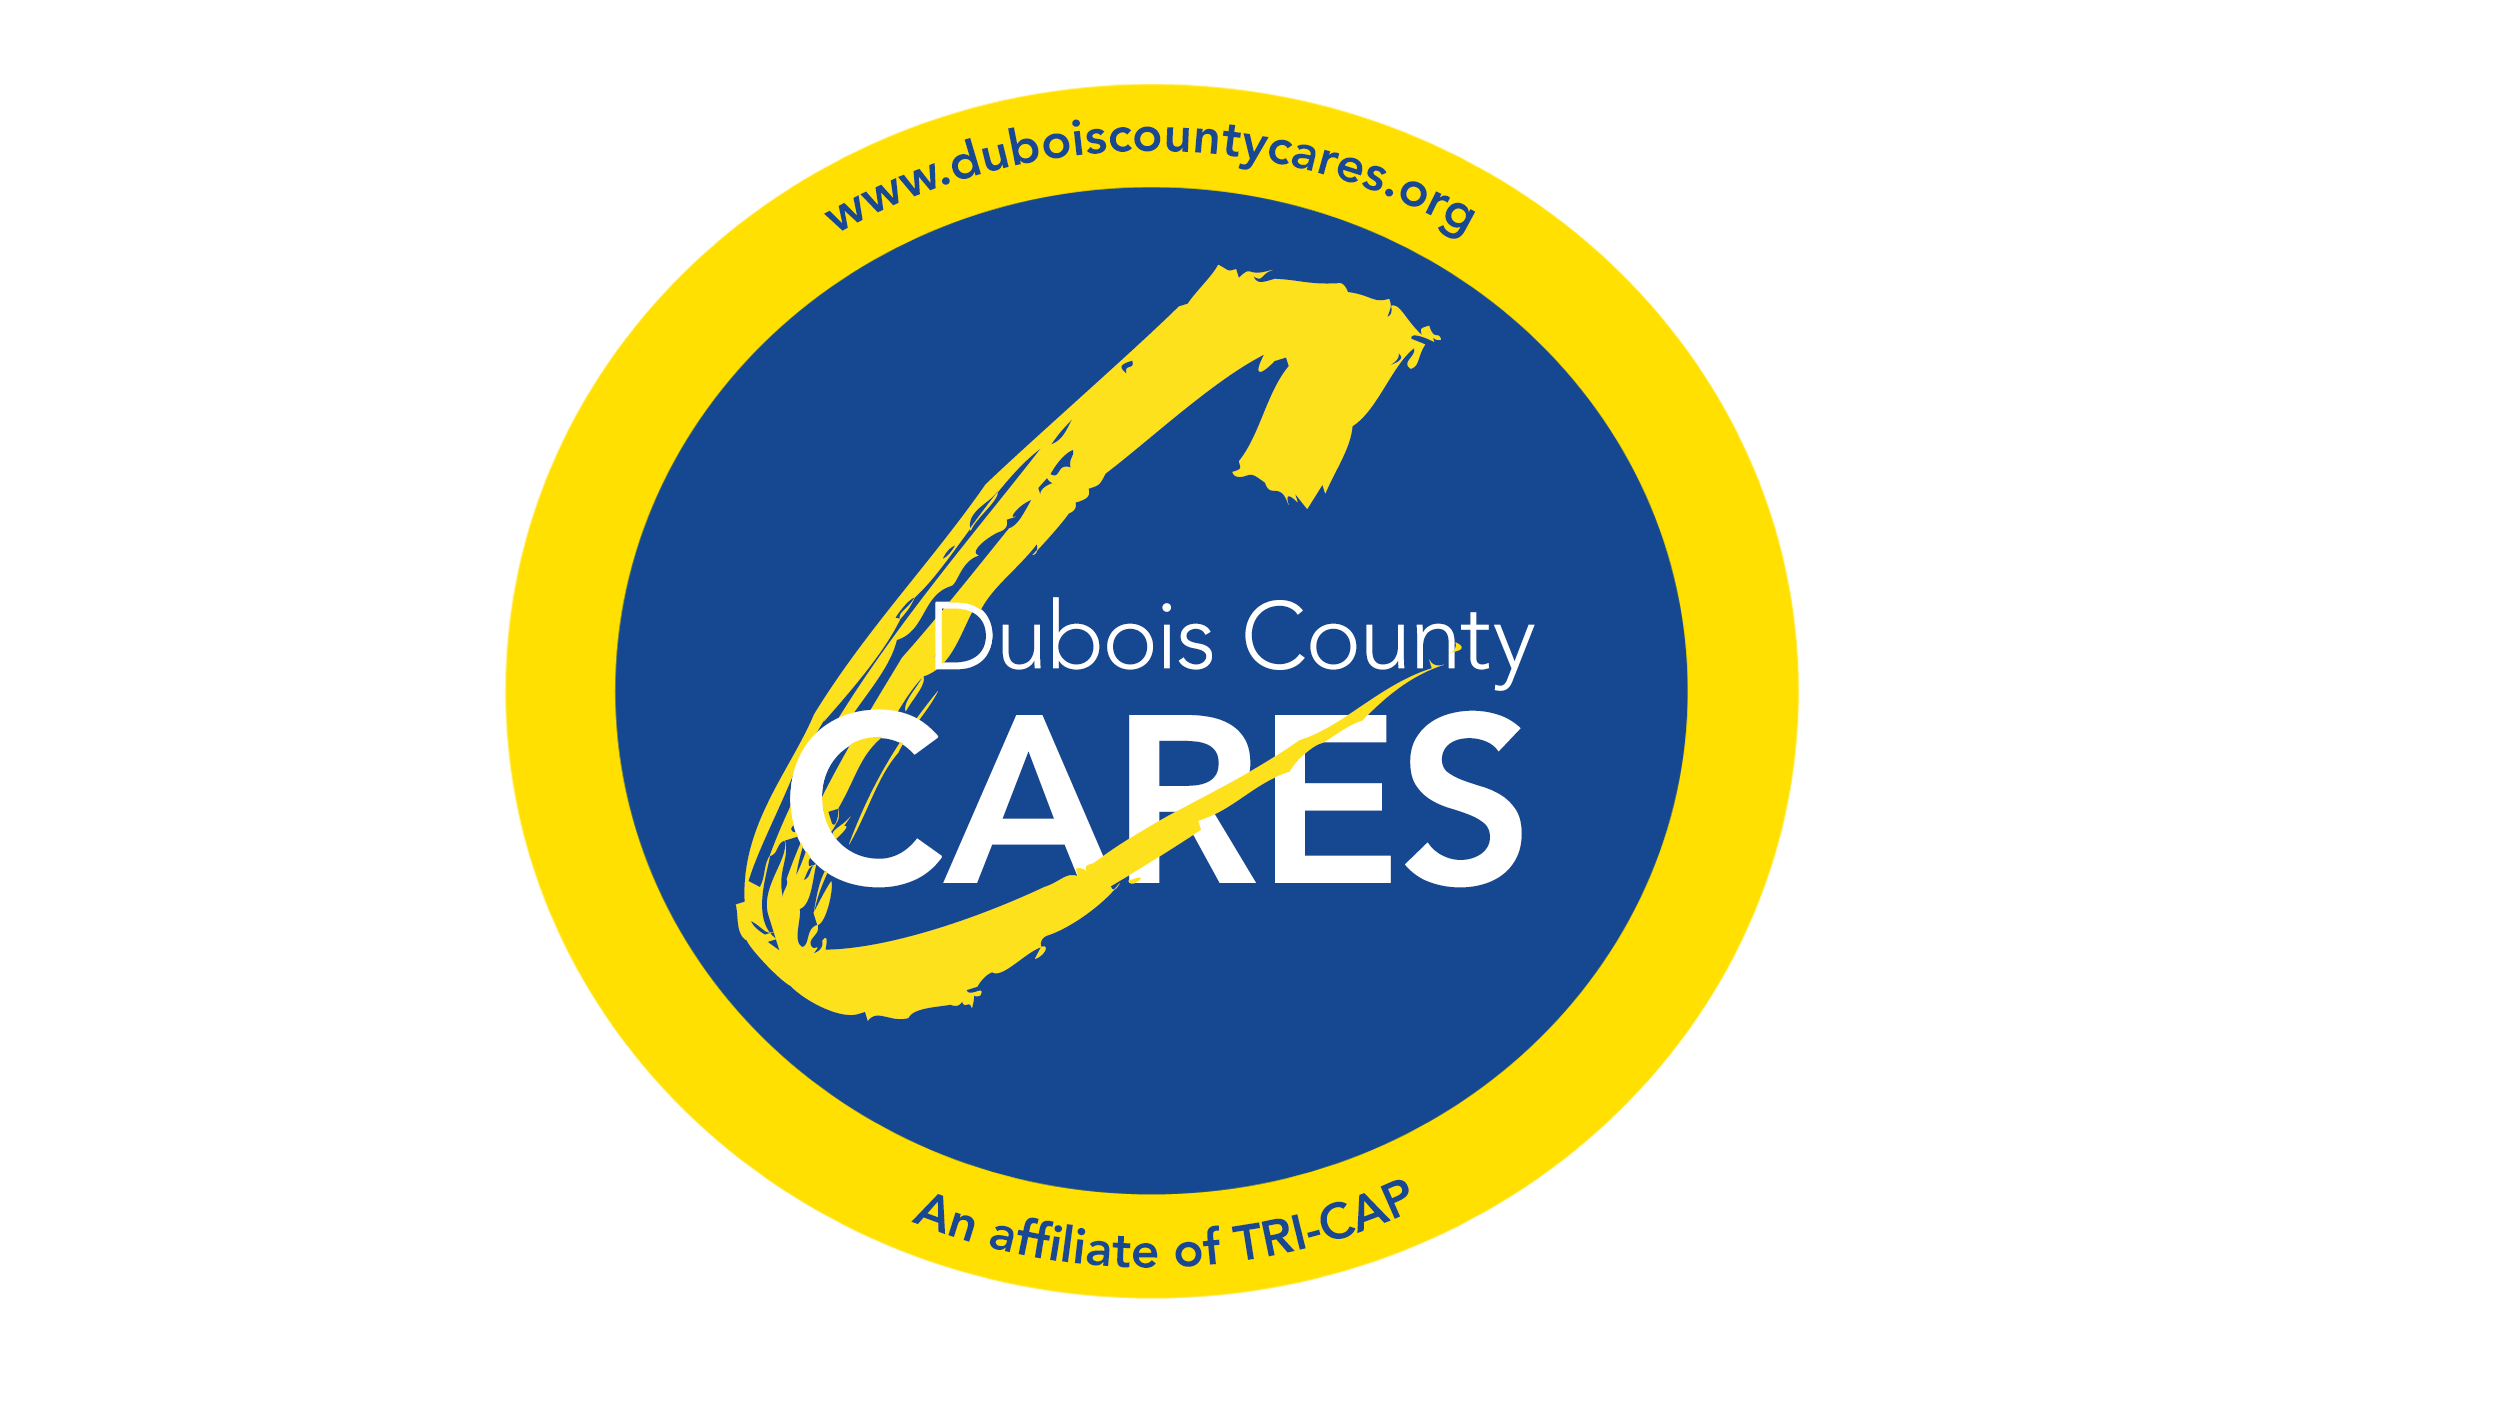 Dubois County Cares Honored at CADCA'S National Leadership Forum